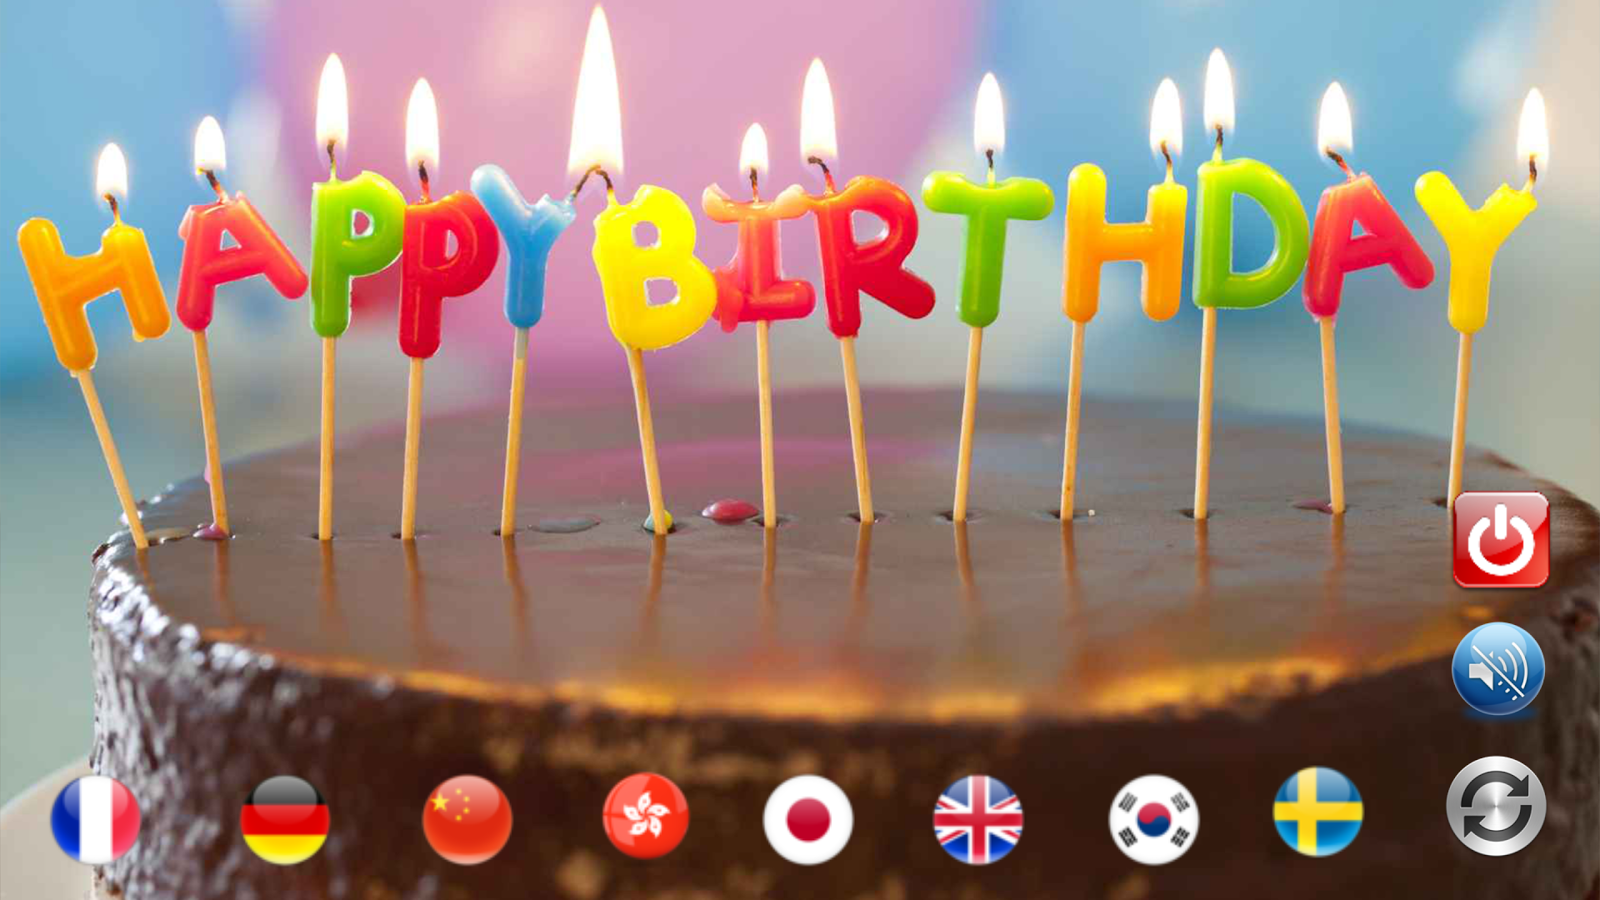 the happy birthday song mp3 free download